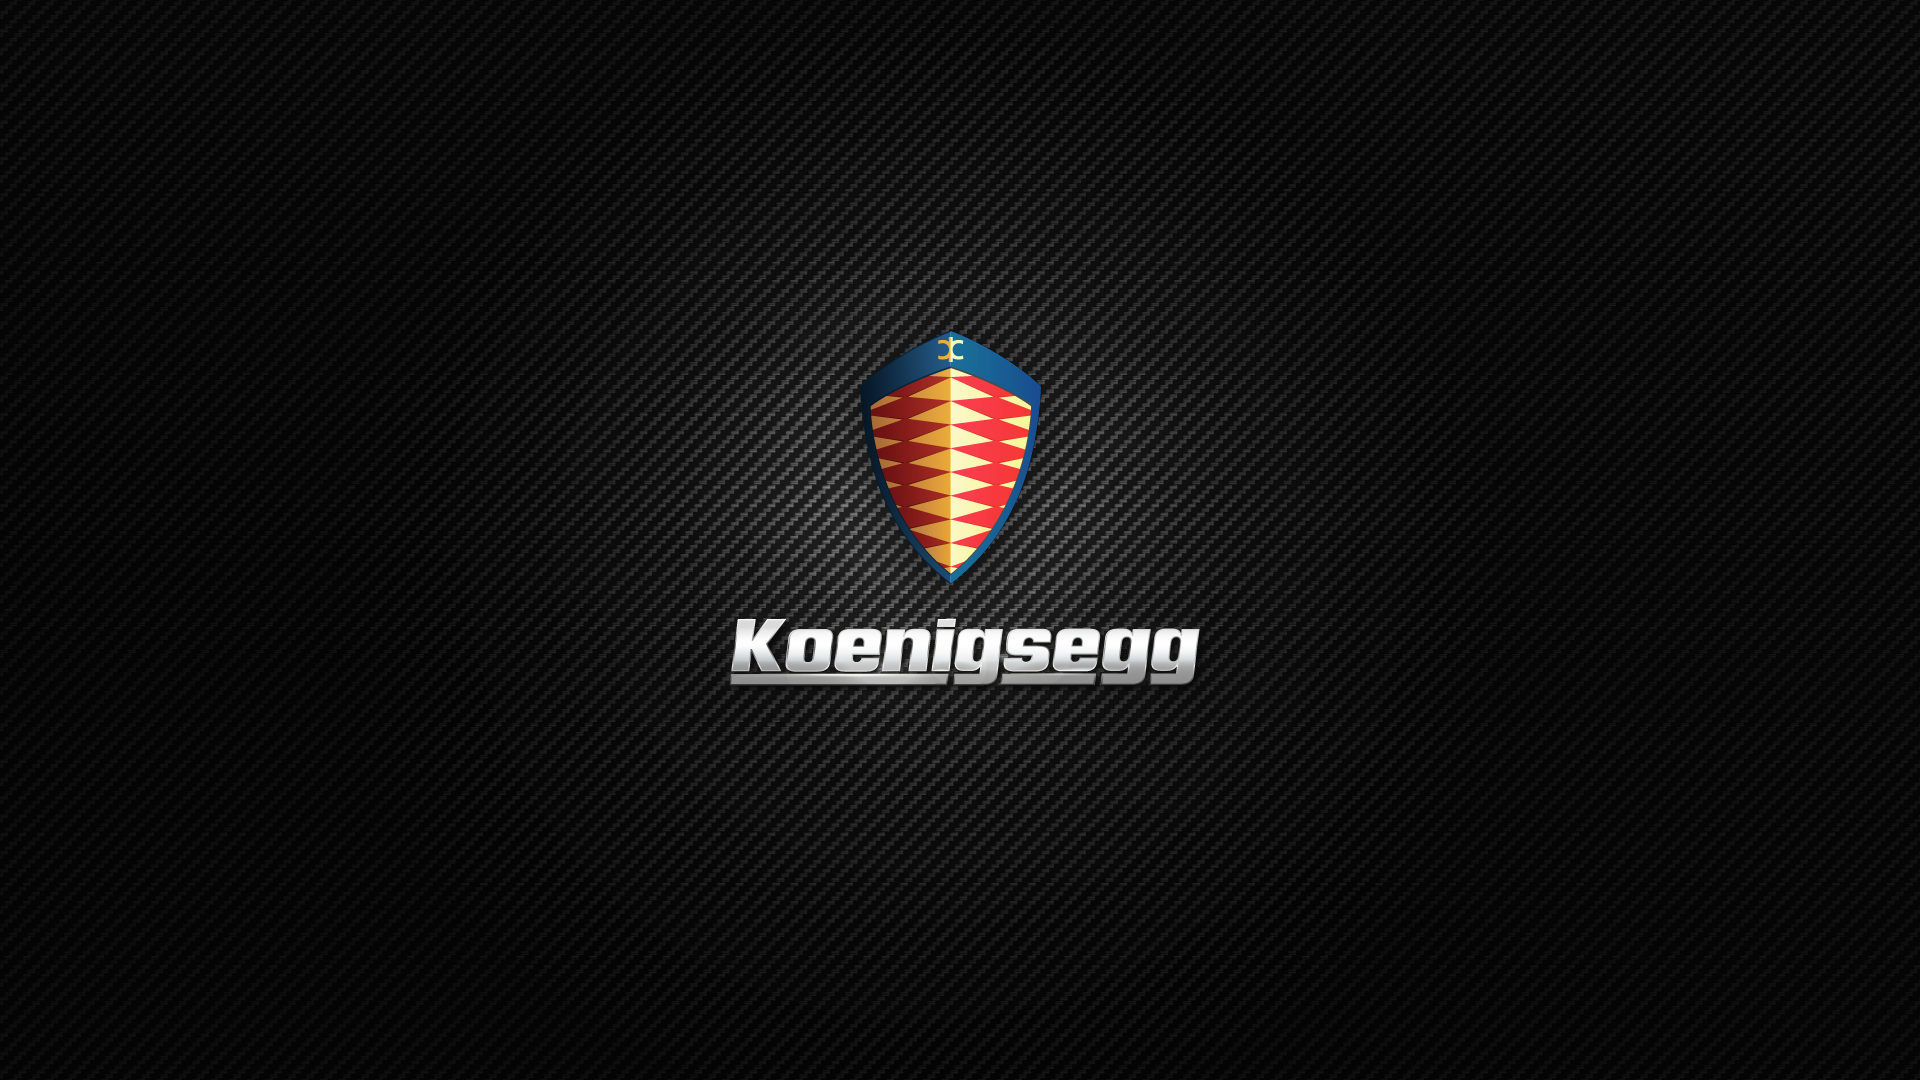 "Download the following Koenigsegg Logo Wallpaper HD 41876 by clicking the orange button positioned underneath the ""Download Wallpaper"" section."